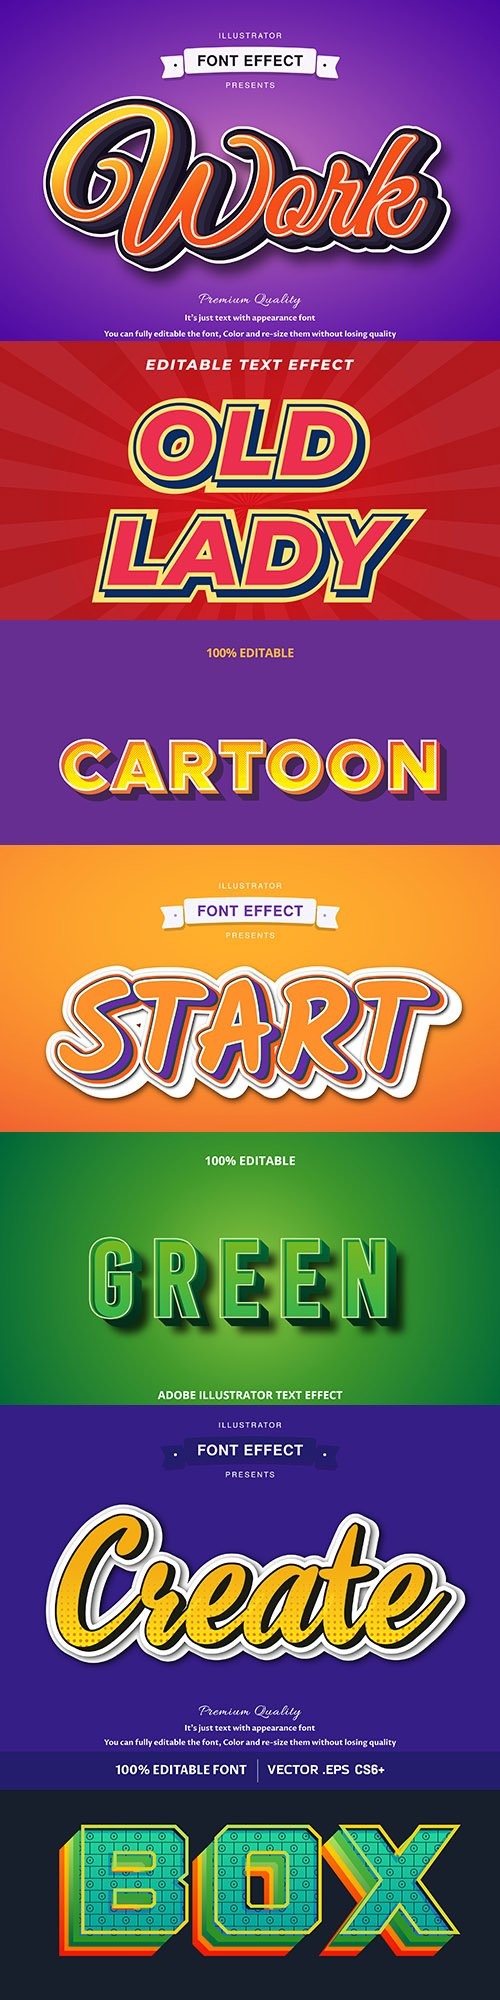 Editable font effect text collection illustration 18